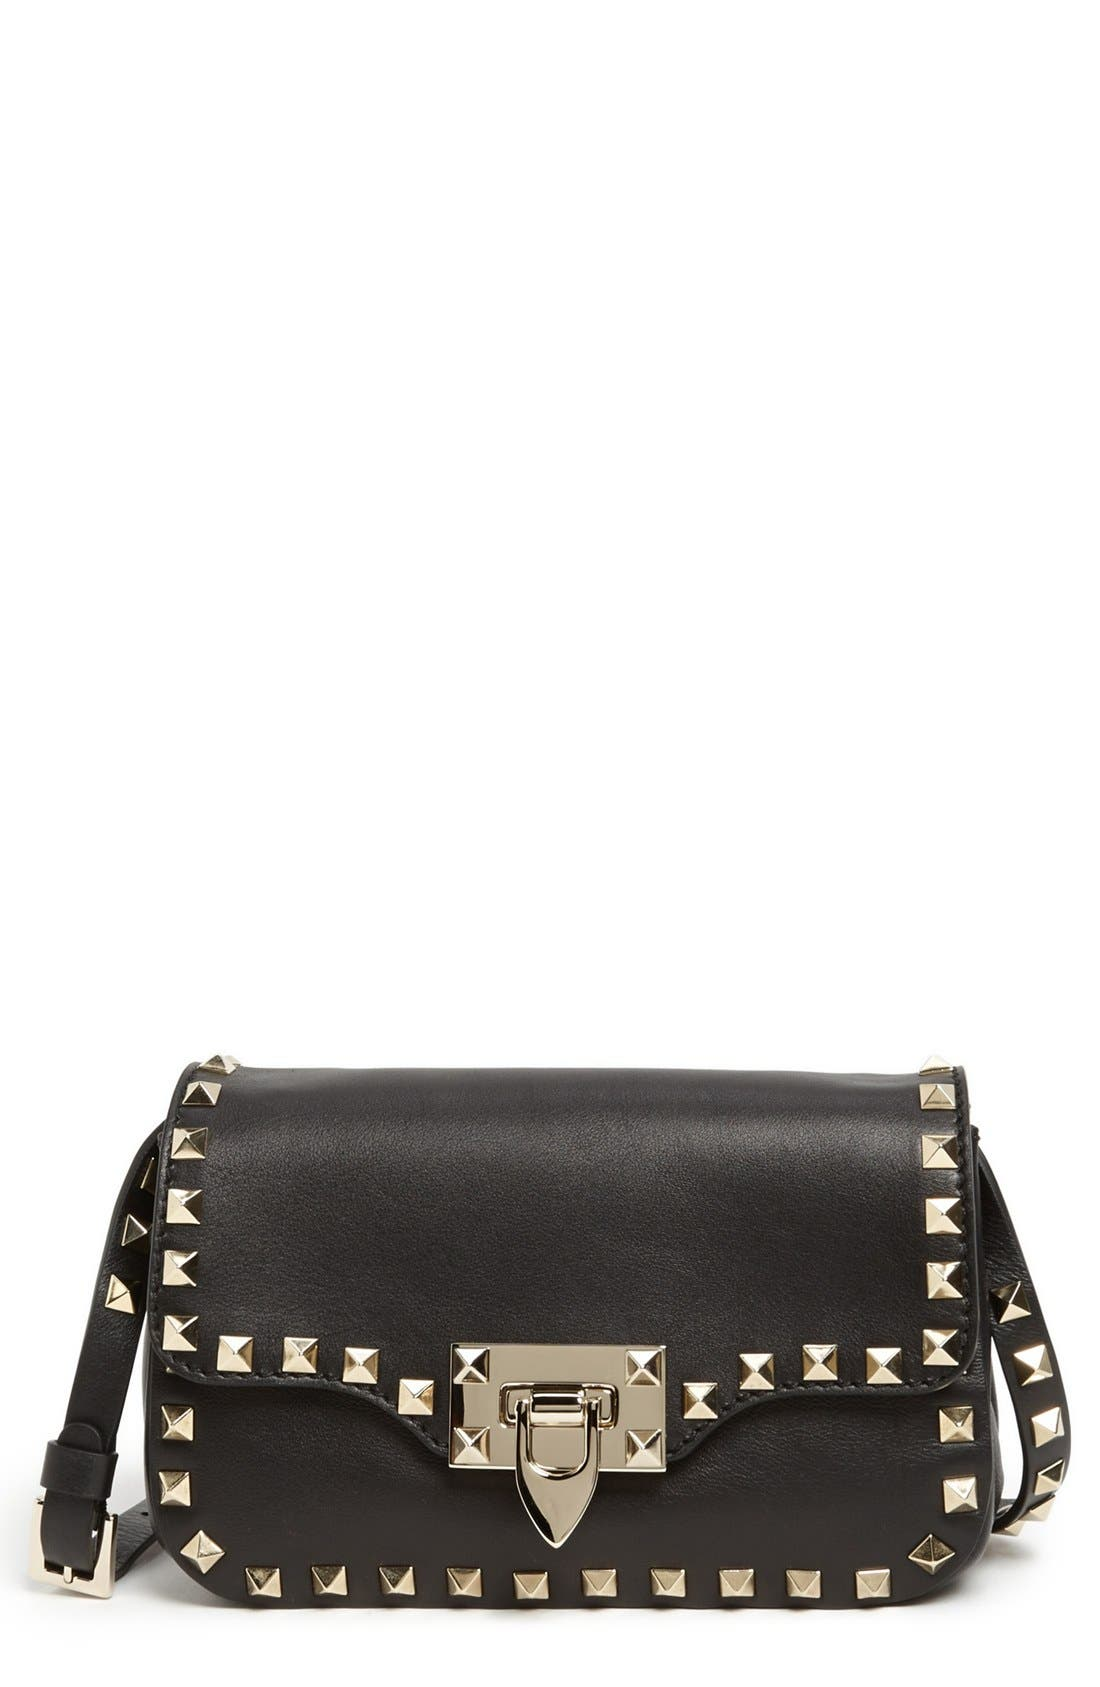 Main Image - Valentino 'Small Rockstud' Flap Bag